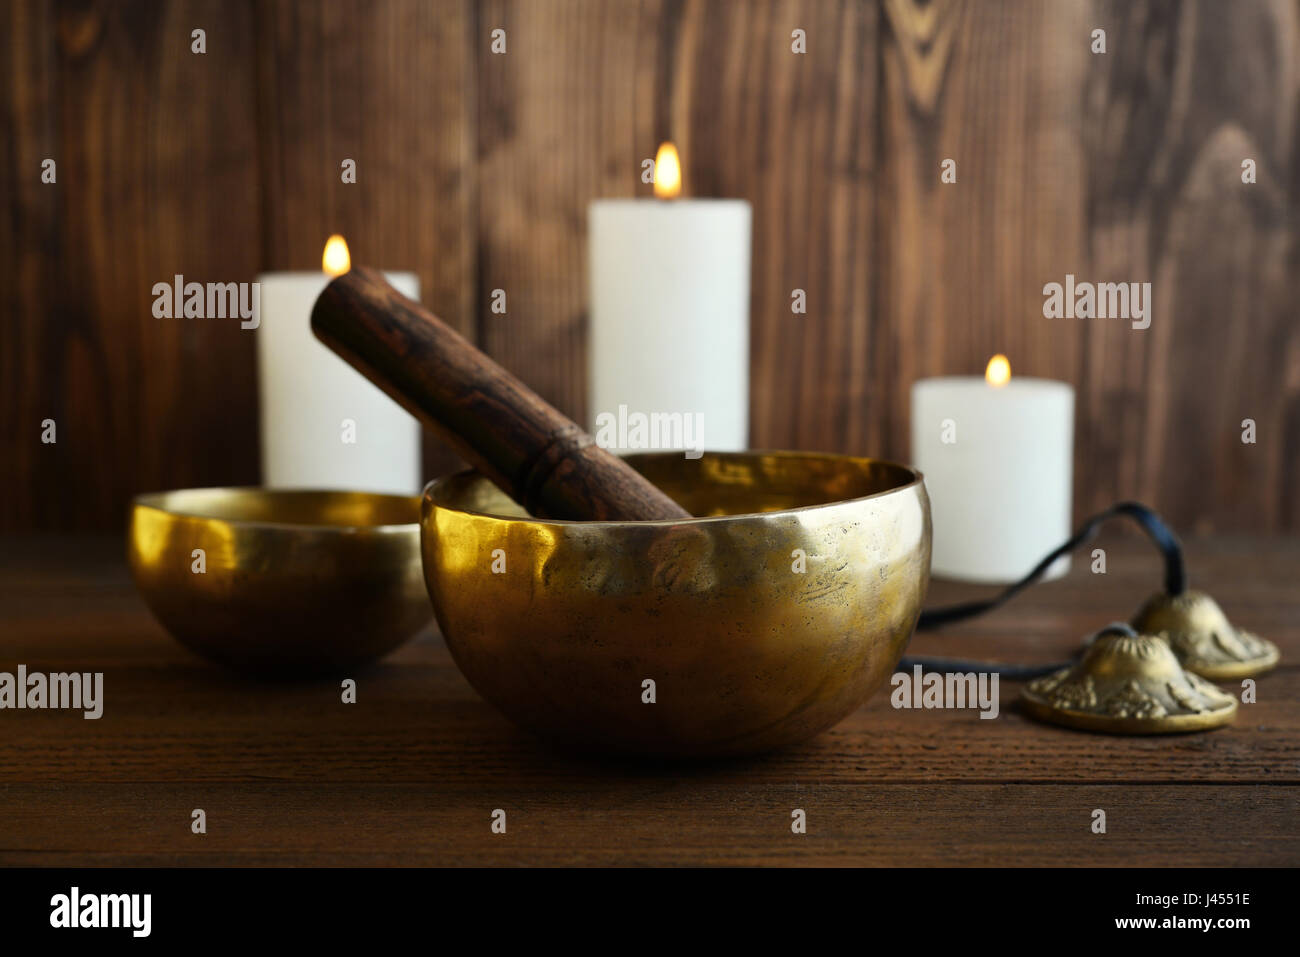 Tibetan handcrafted singing bowls with sticks on wooden background - Stock Image